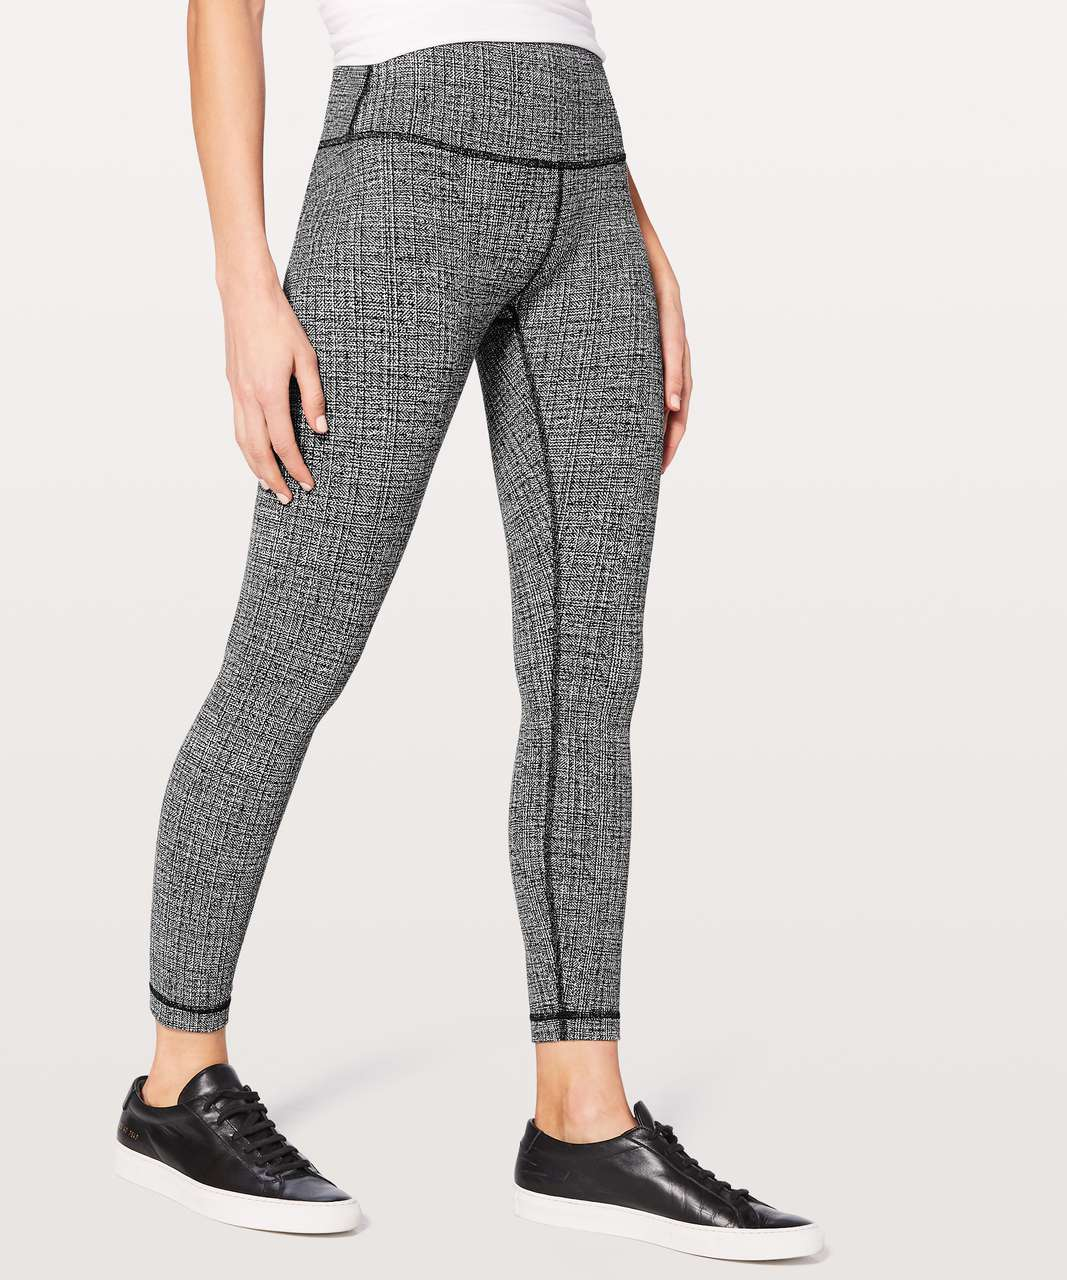 "Lululemon Wunder Under Hi-Rise 7/8 Tight 25"" - Ritual Jacquard Luon Black White"